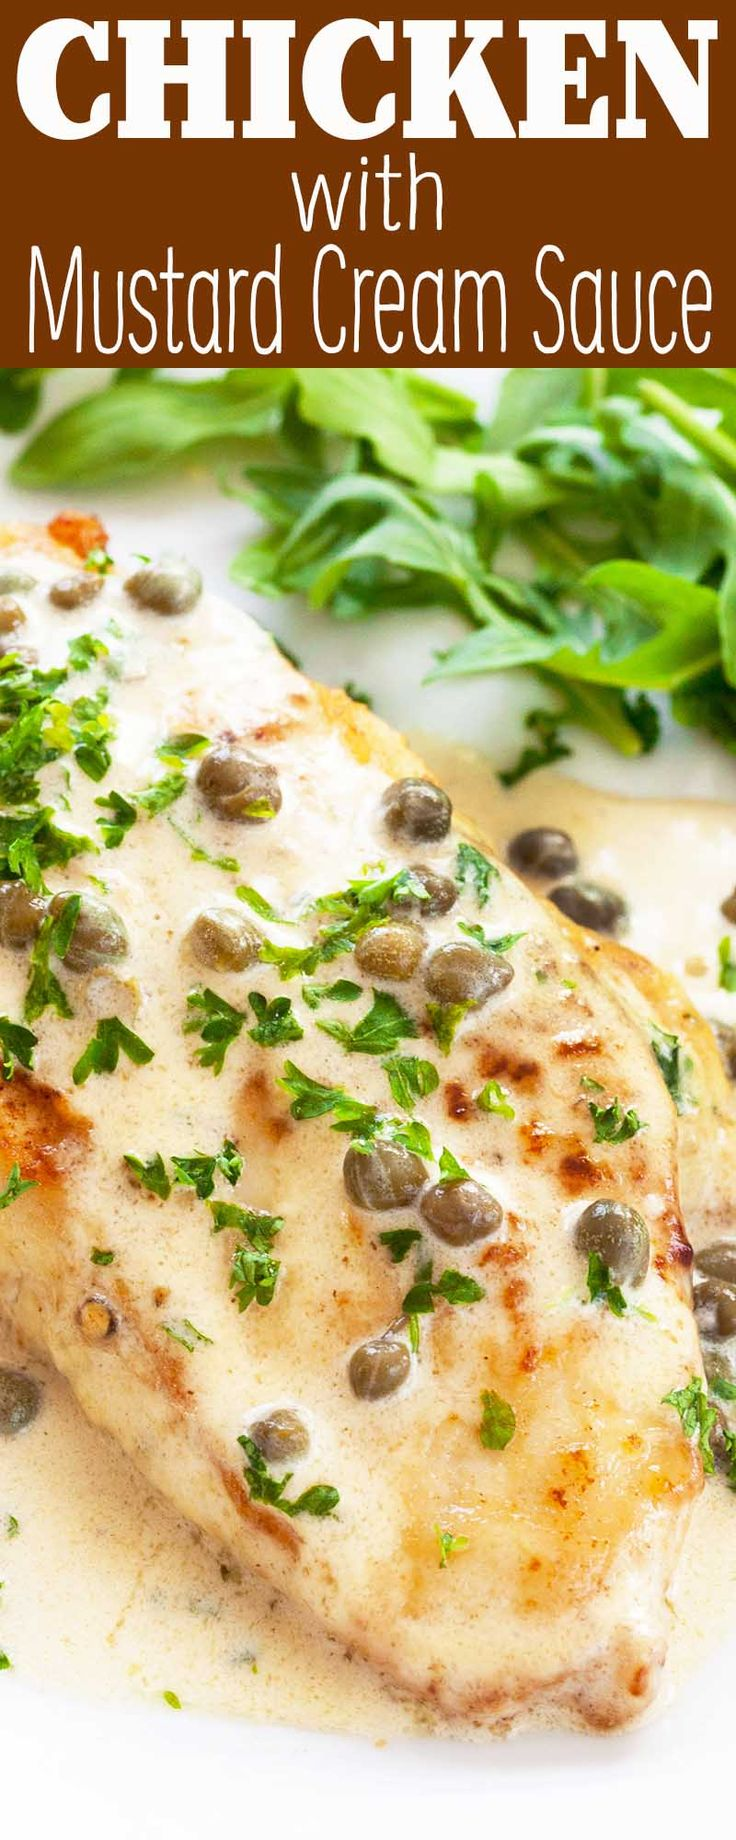 EASY chicken breasts with a QUICK mustard cream sauce! Ready in under 30 minutes. Great with rice, pasta, or a green salad.